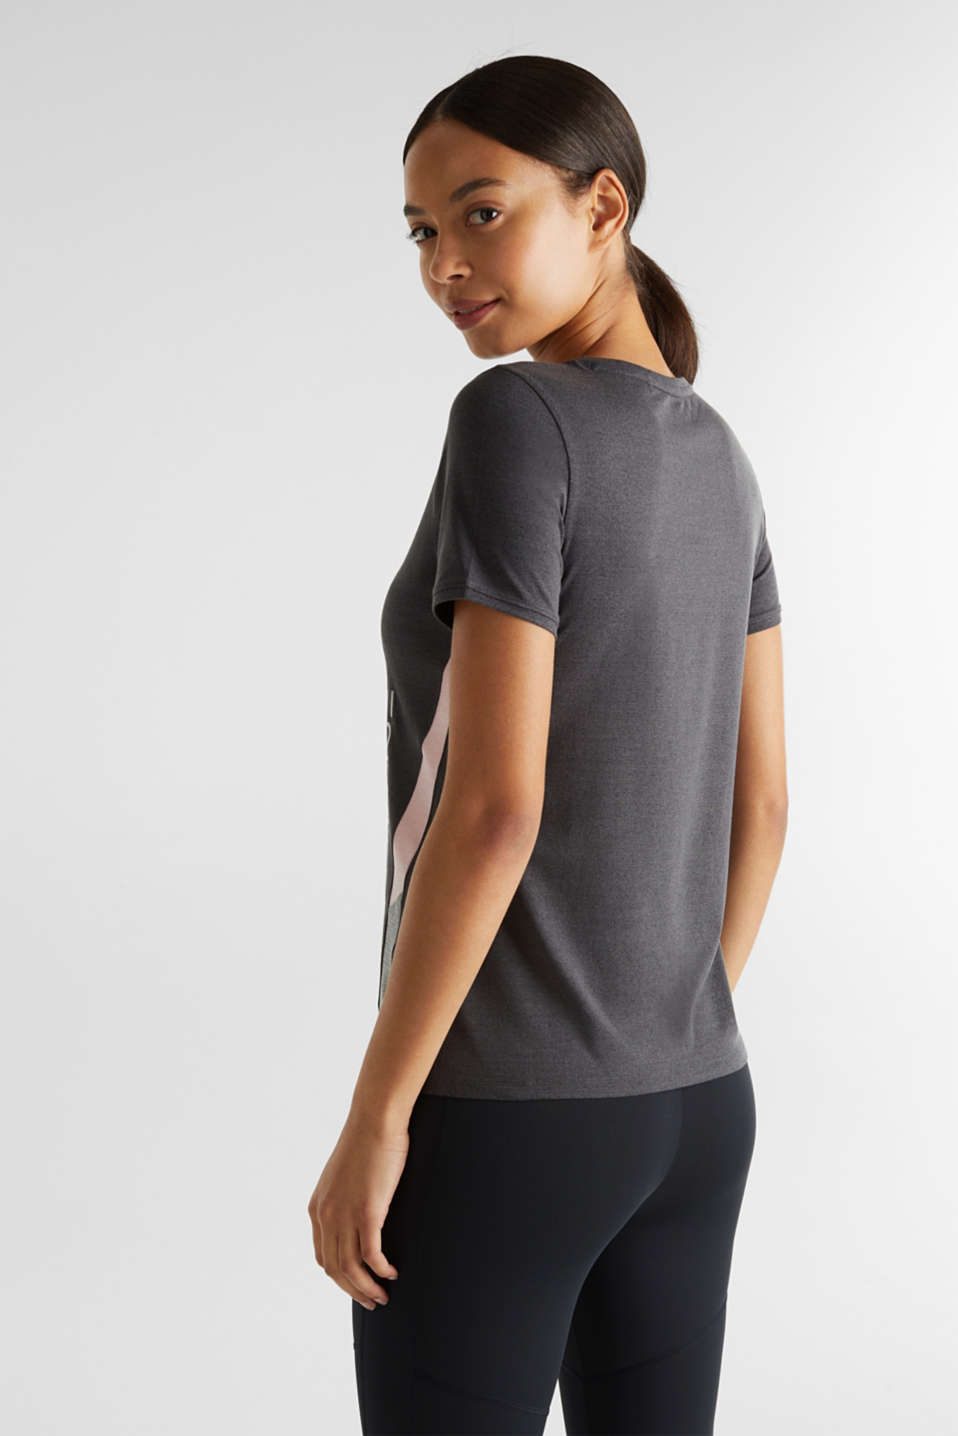 Stretch top with colour block stripes, E-DRY, ANTHRACITE 2, detail image number 3